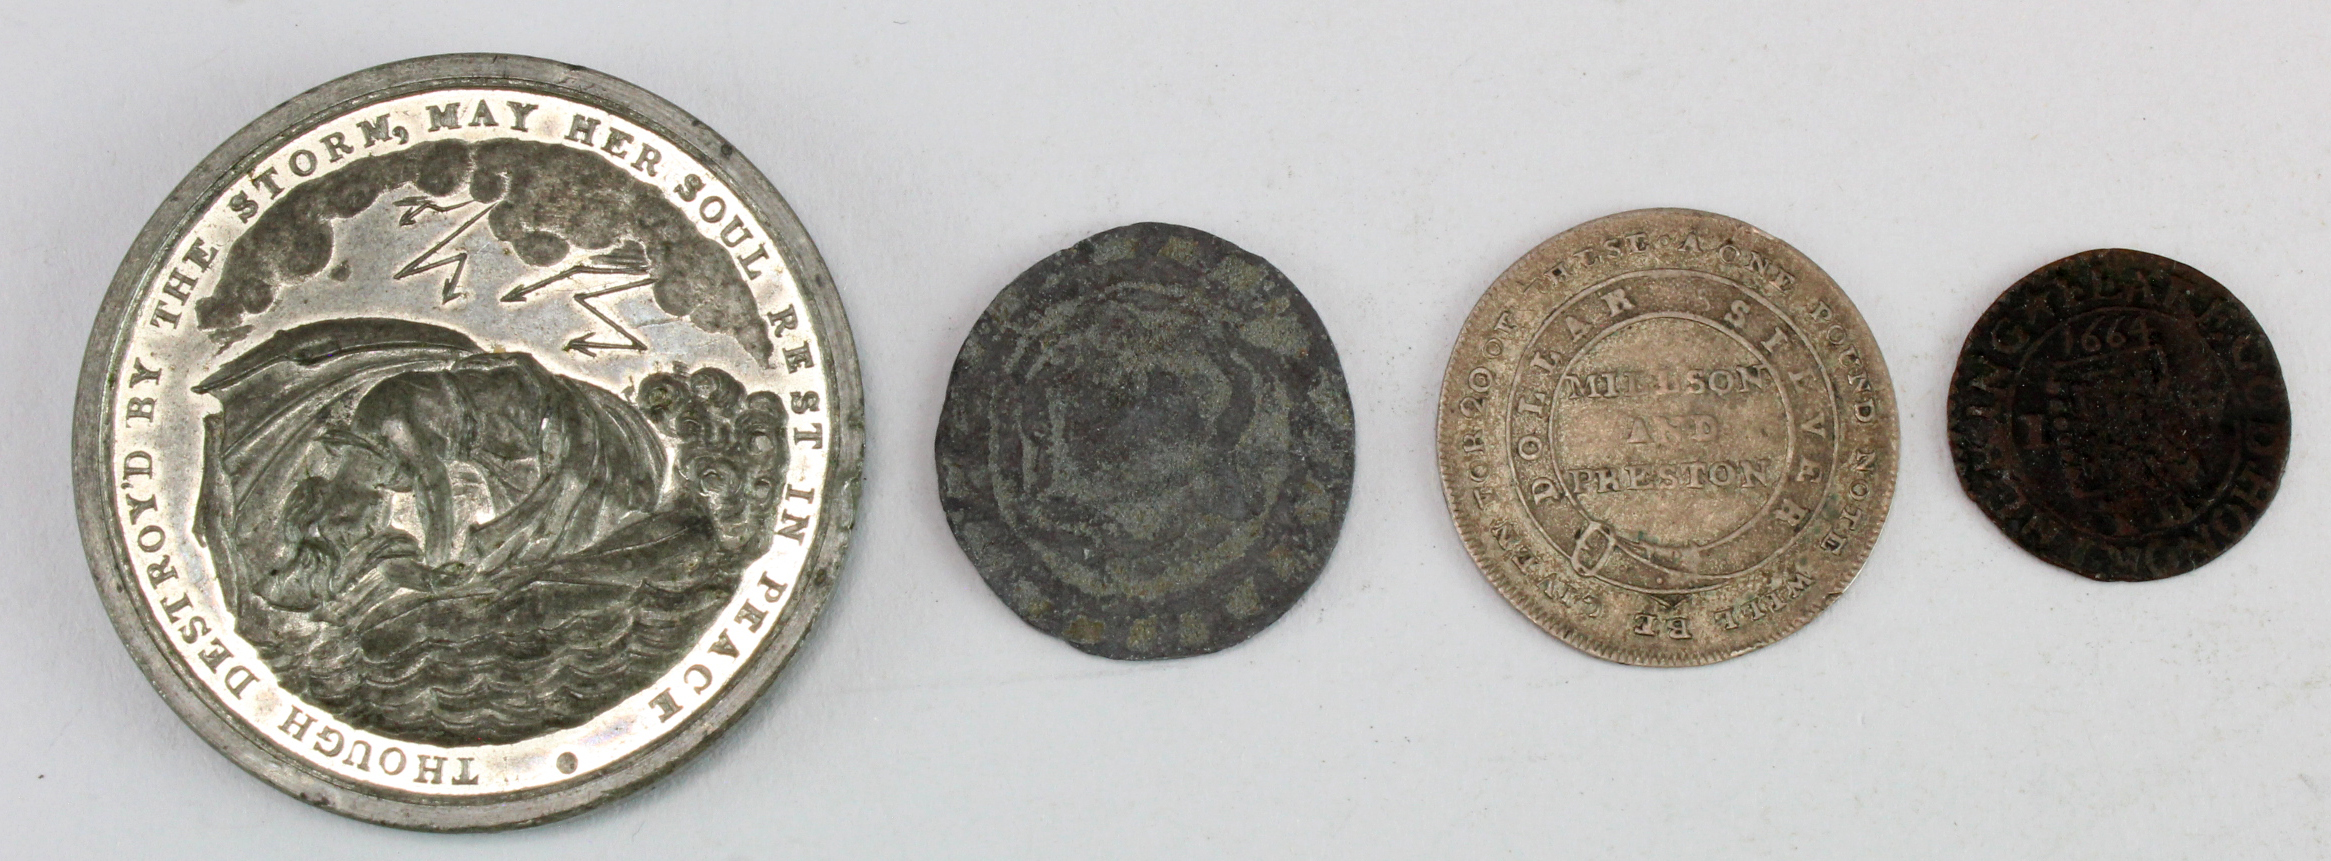 British Tokens & Medals (4): A very rare 17th token: Dickinson 'Uncertain' #65 'TOVCH NOT MINE - Image 2 of 2